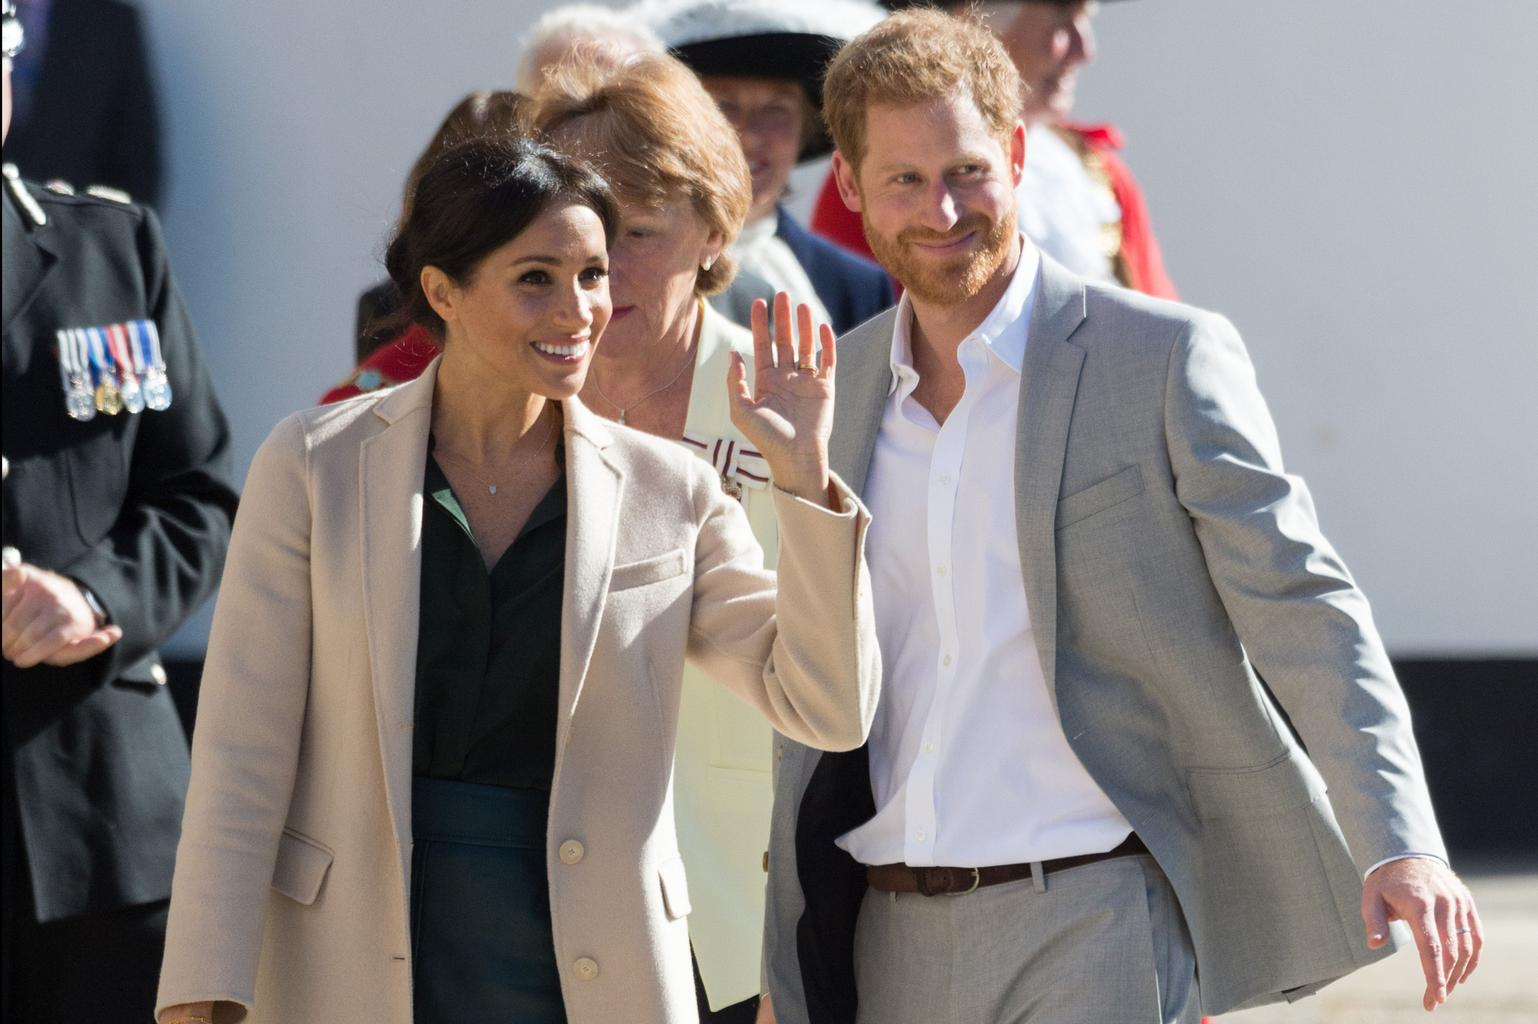 Royal Tour: Prince Harry and Meghan Markle visit Melbourne day 3